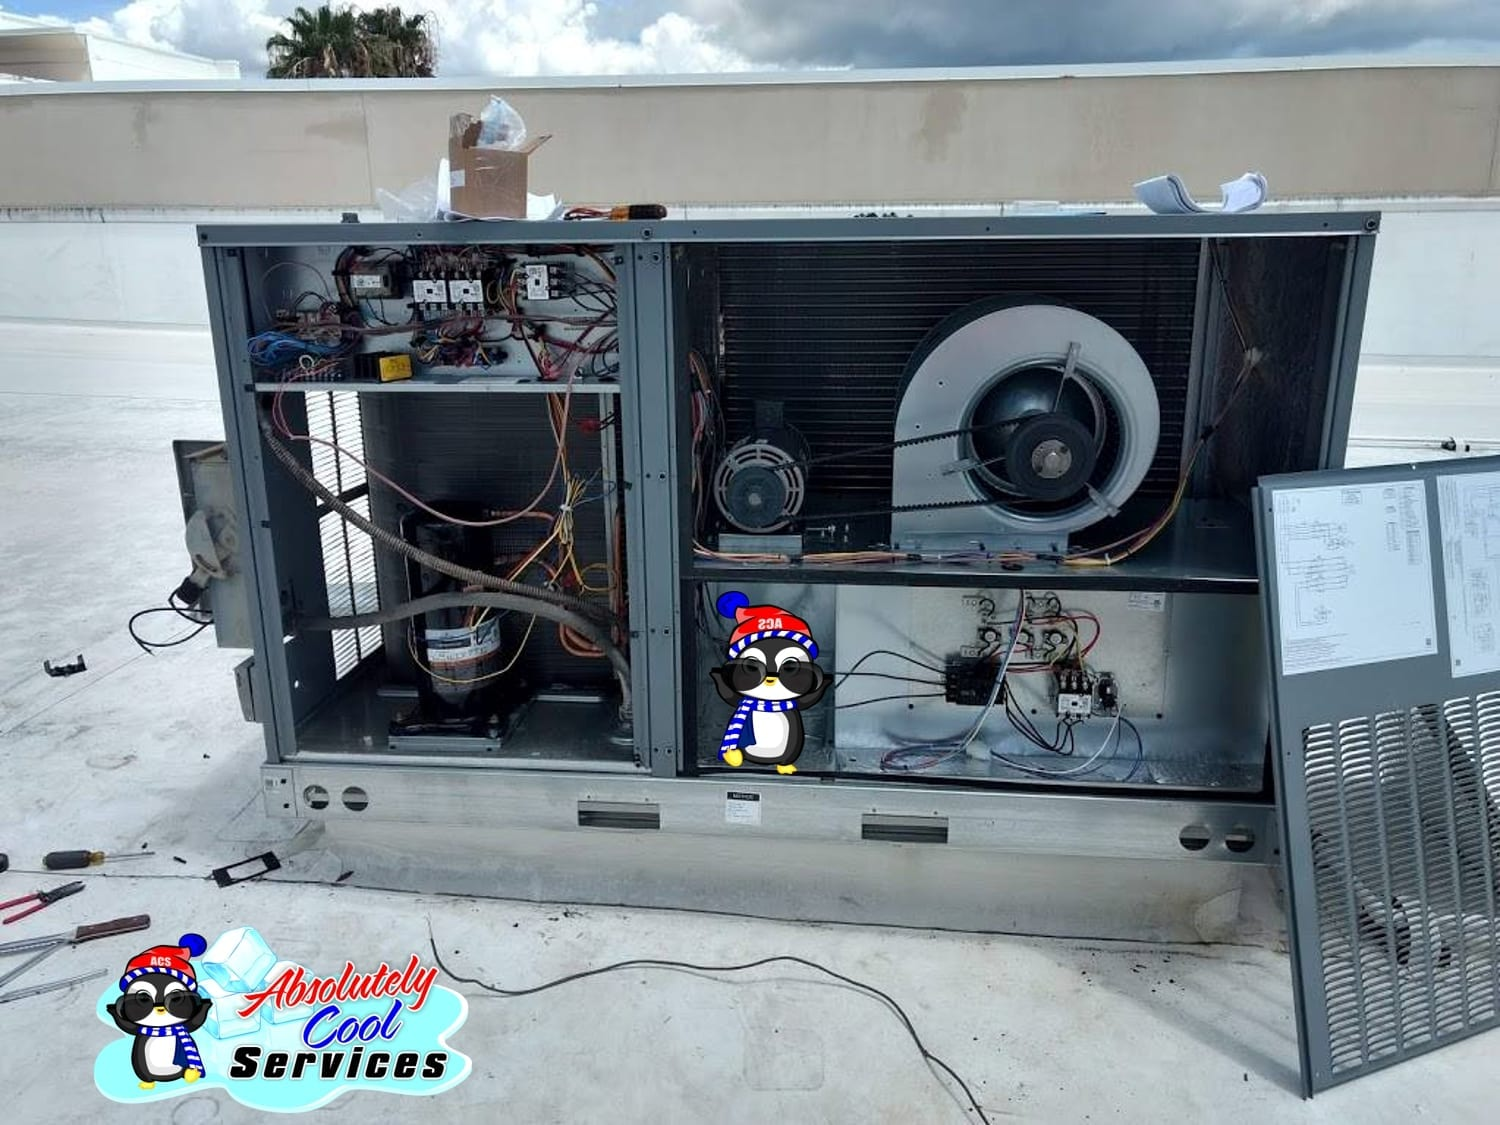 Roof Air Conditioning | Emergency Air Conditioning Installation Service near Boynton Beach